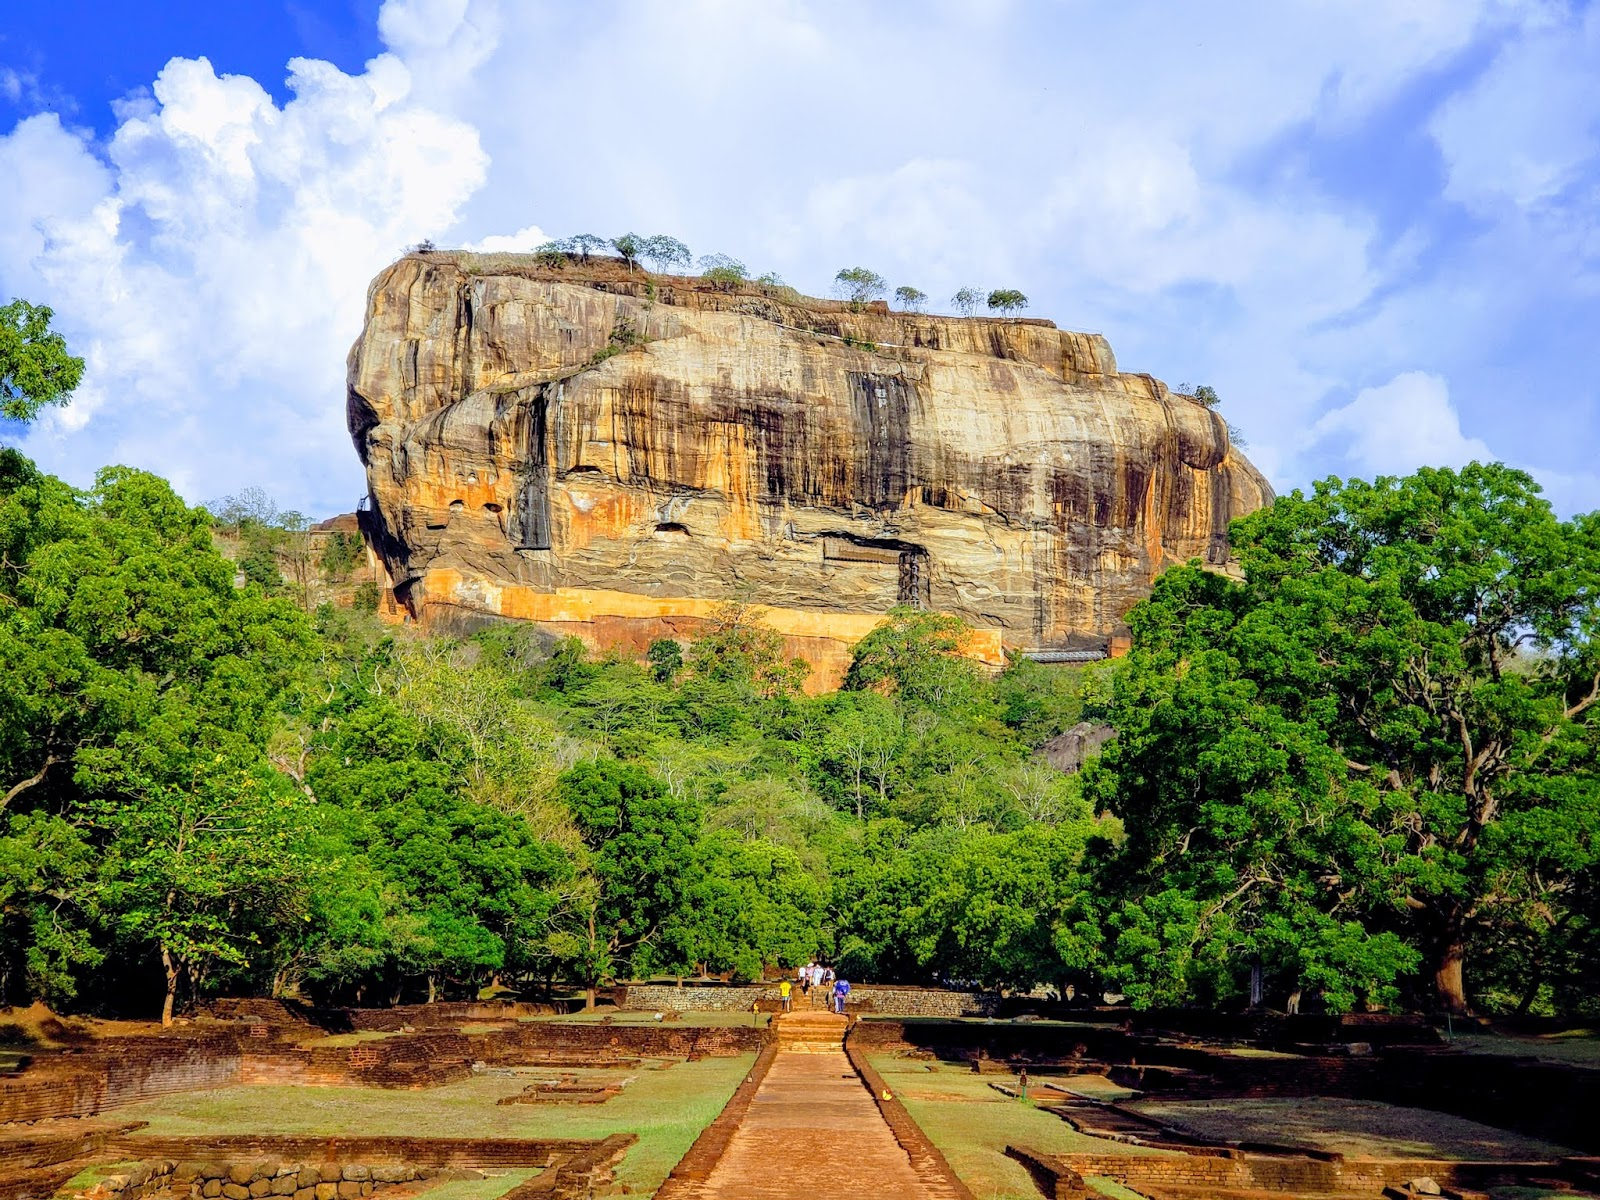 200 meters high Sigiriya Rock and fortress at the top